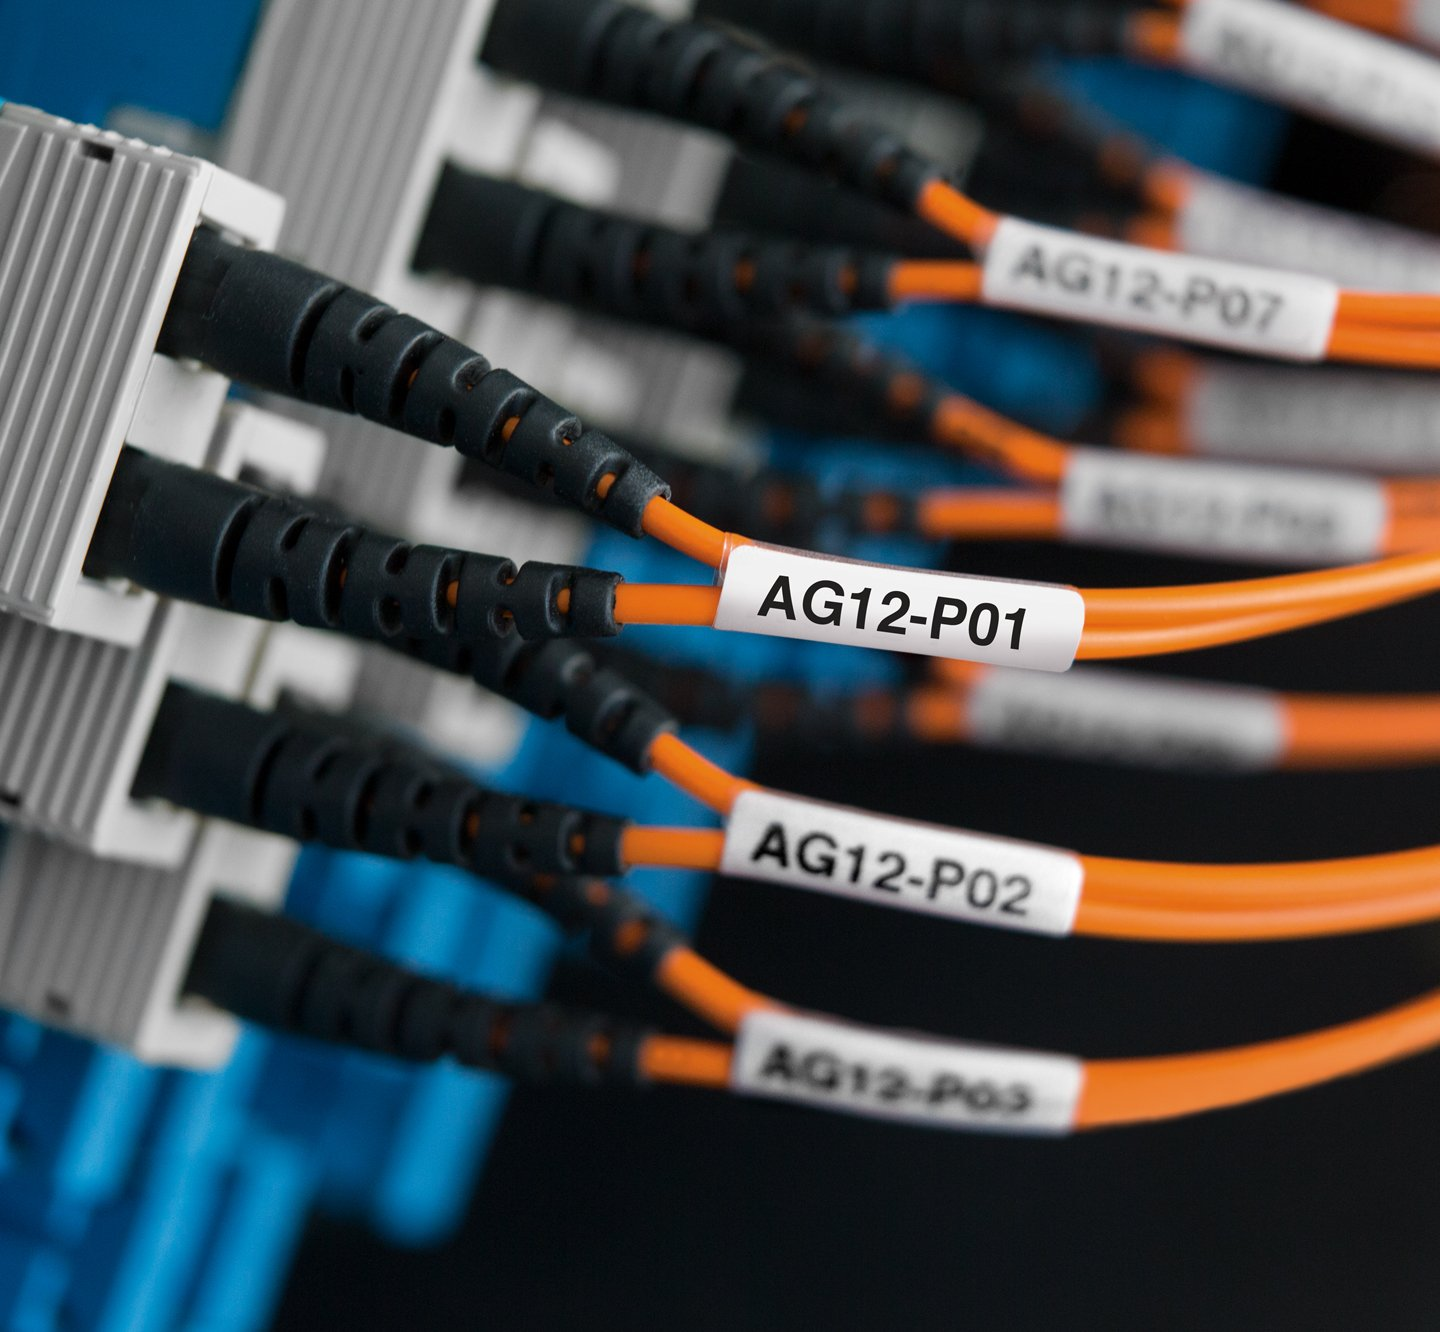 Cable wraps being used on plugged in cables.